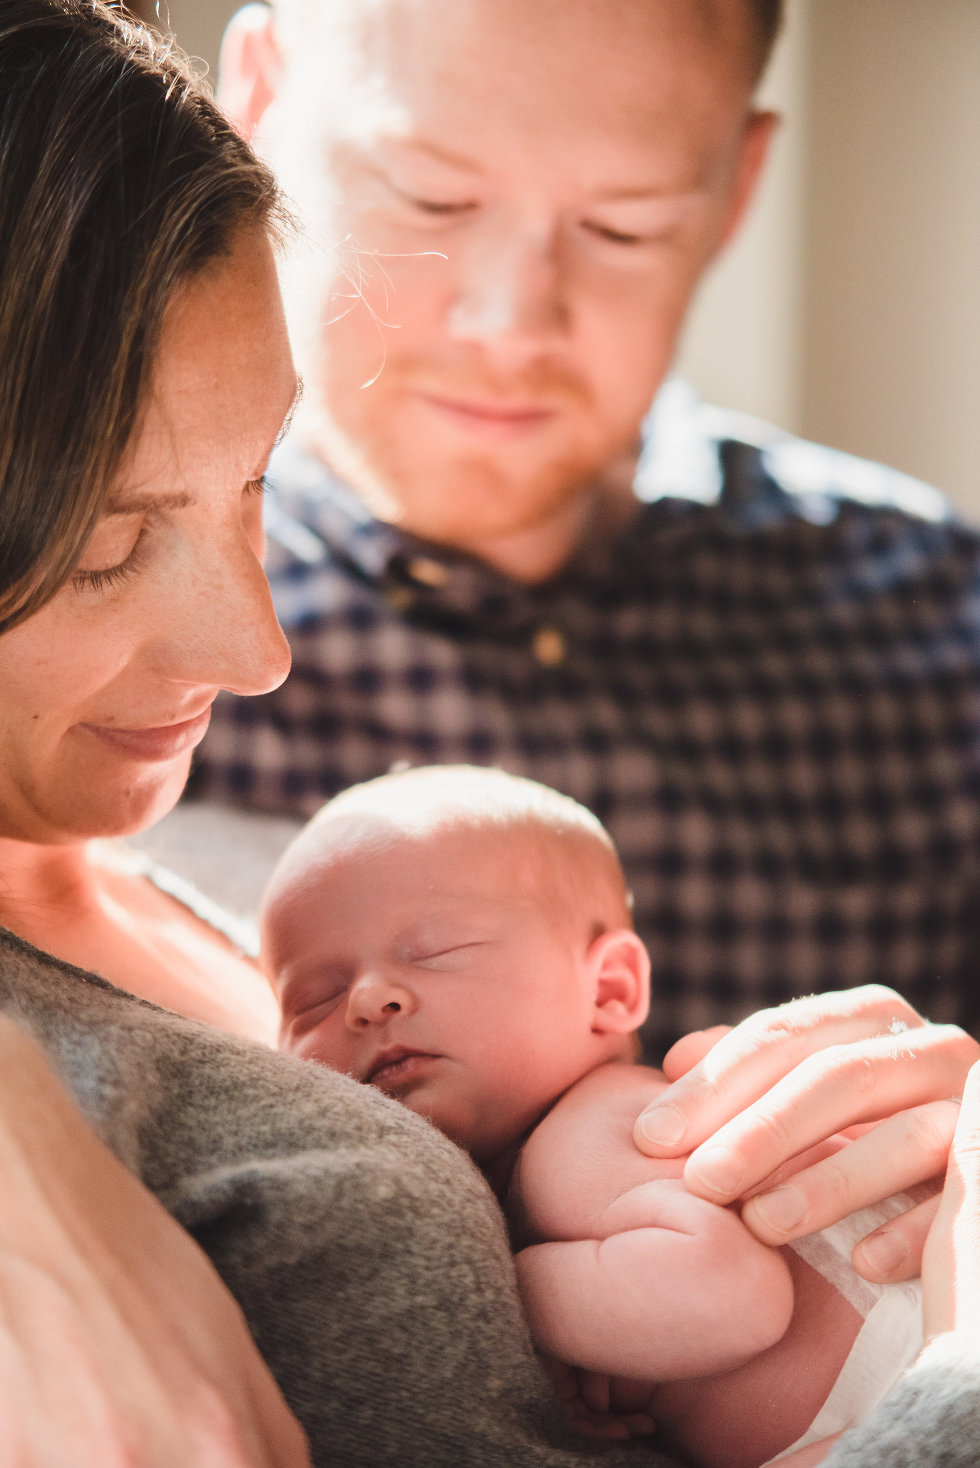 husband looks on as wife holds newborn to her chest Toronto lifestyle photographer Gillian Foster